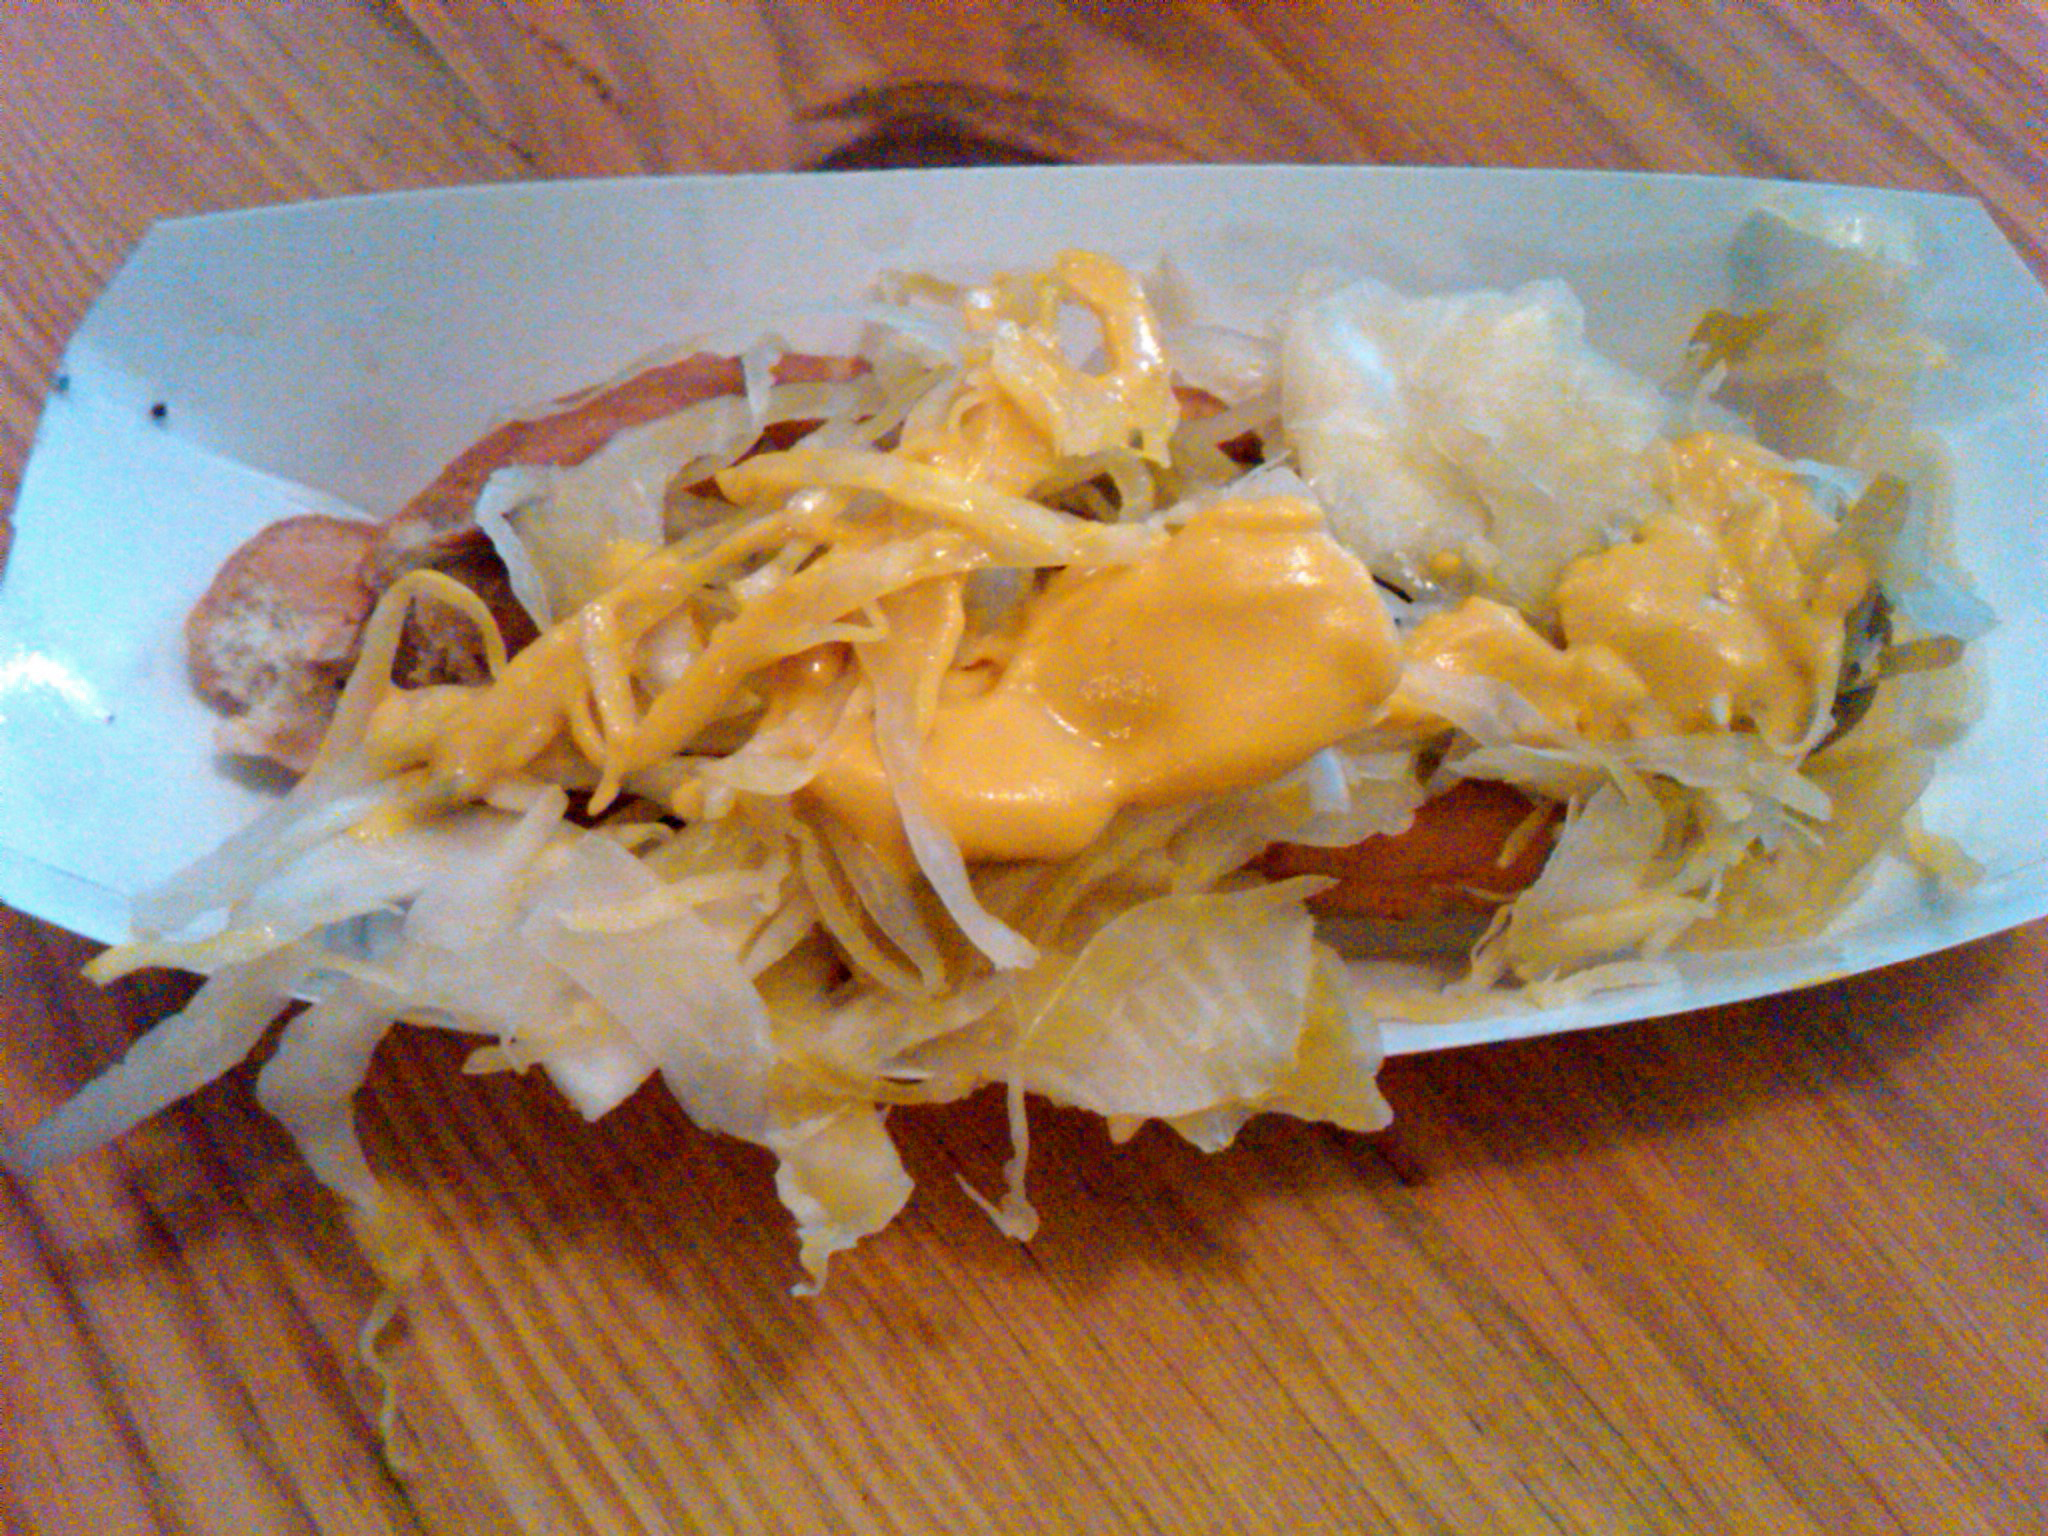 A Bark messy kraut and mustard veggie dog.